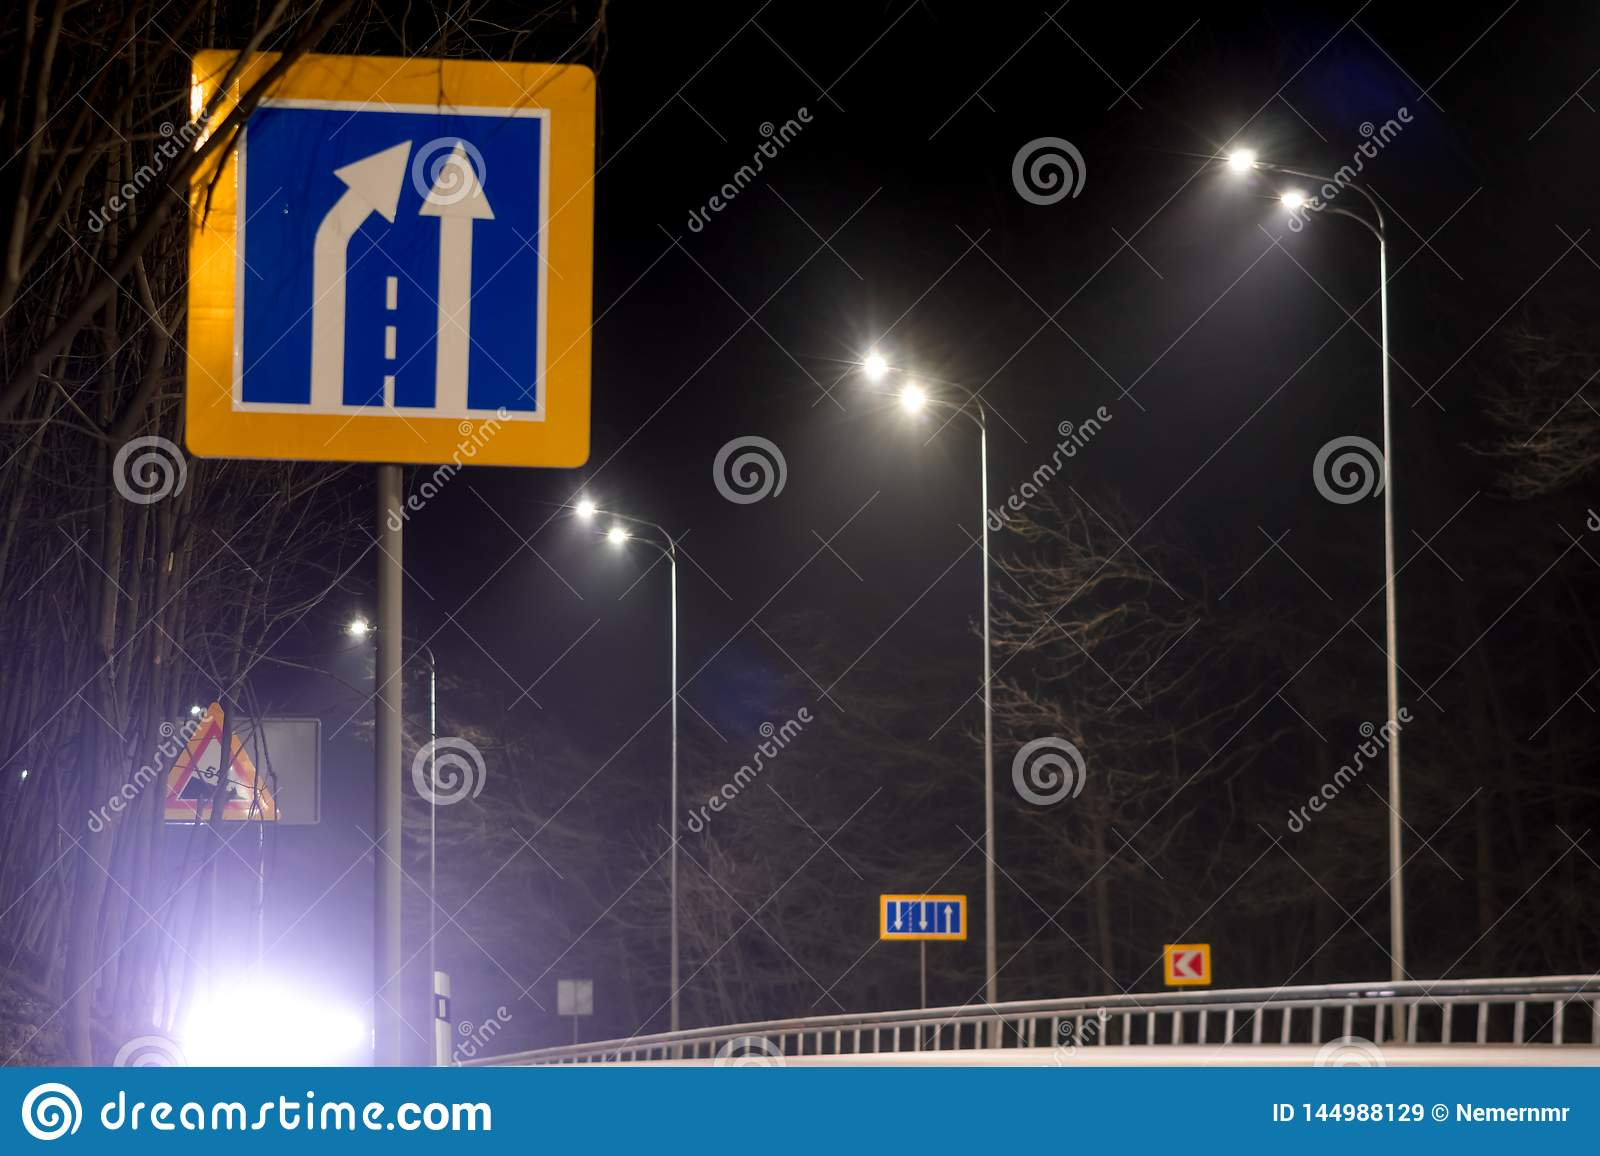 Road narrowing sign, street lighting, supports for ceilings with led lamps. concept of modernization and maintenance of lamps,